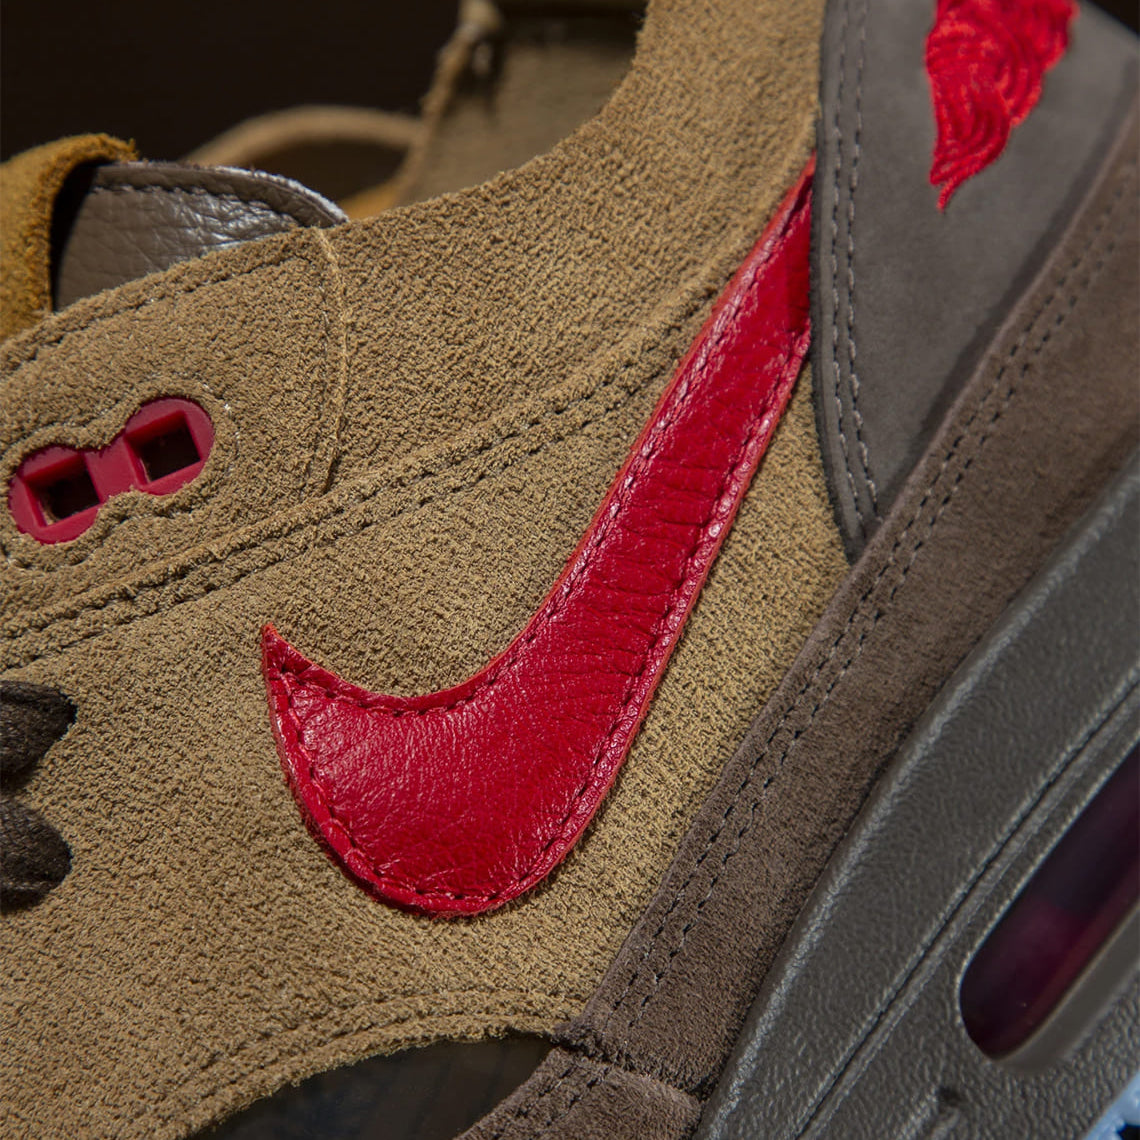 Nike Air Max 1 CLOT K.O.D 2021 Sneaker Release Temple Wear Blog News Red Traditional Logo  Swoosh Red Brown Japanese Tea Inspired Transparent Running Shoes Kiss Of Dead Sneaker Release